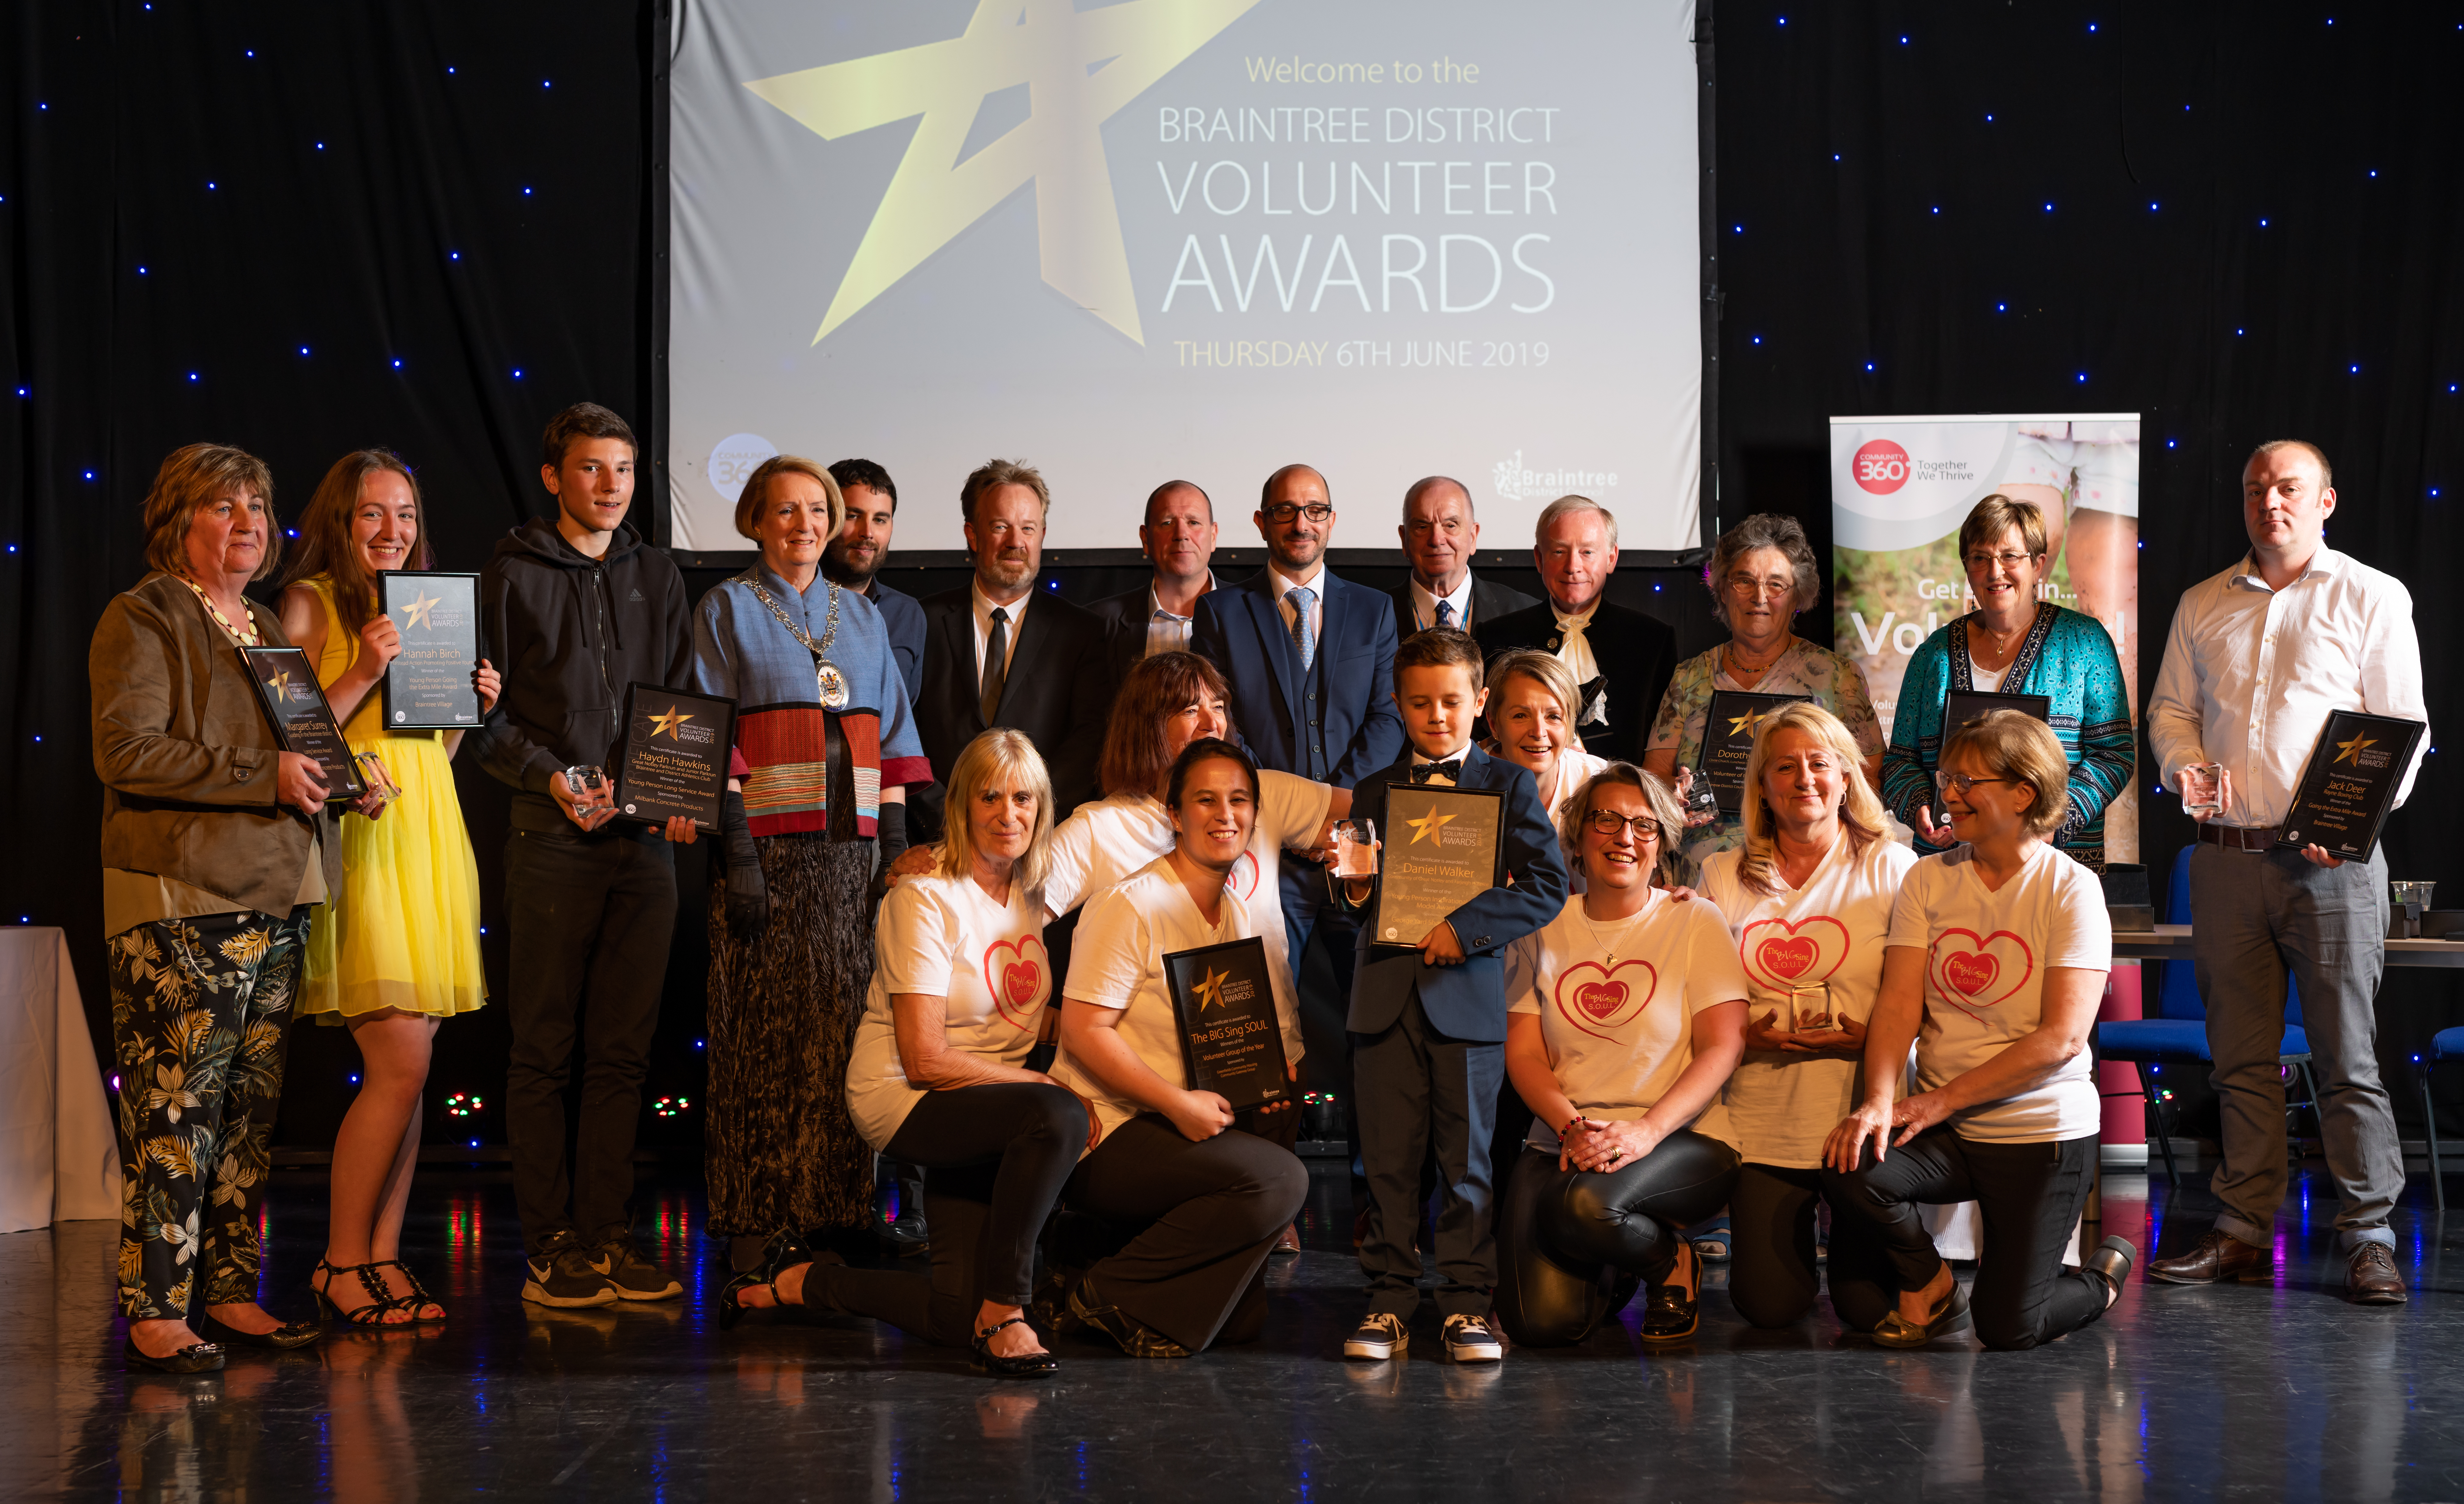 Braintree District Volunteer Award winners